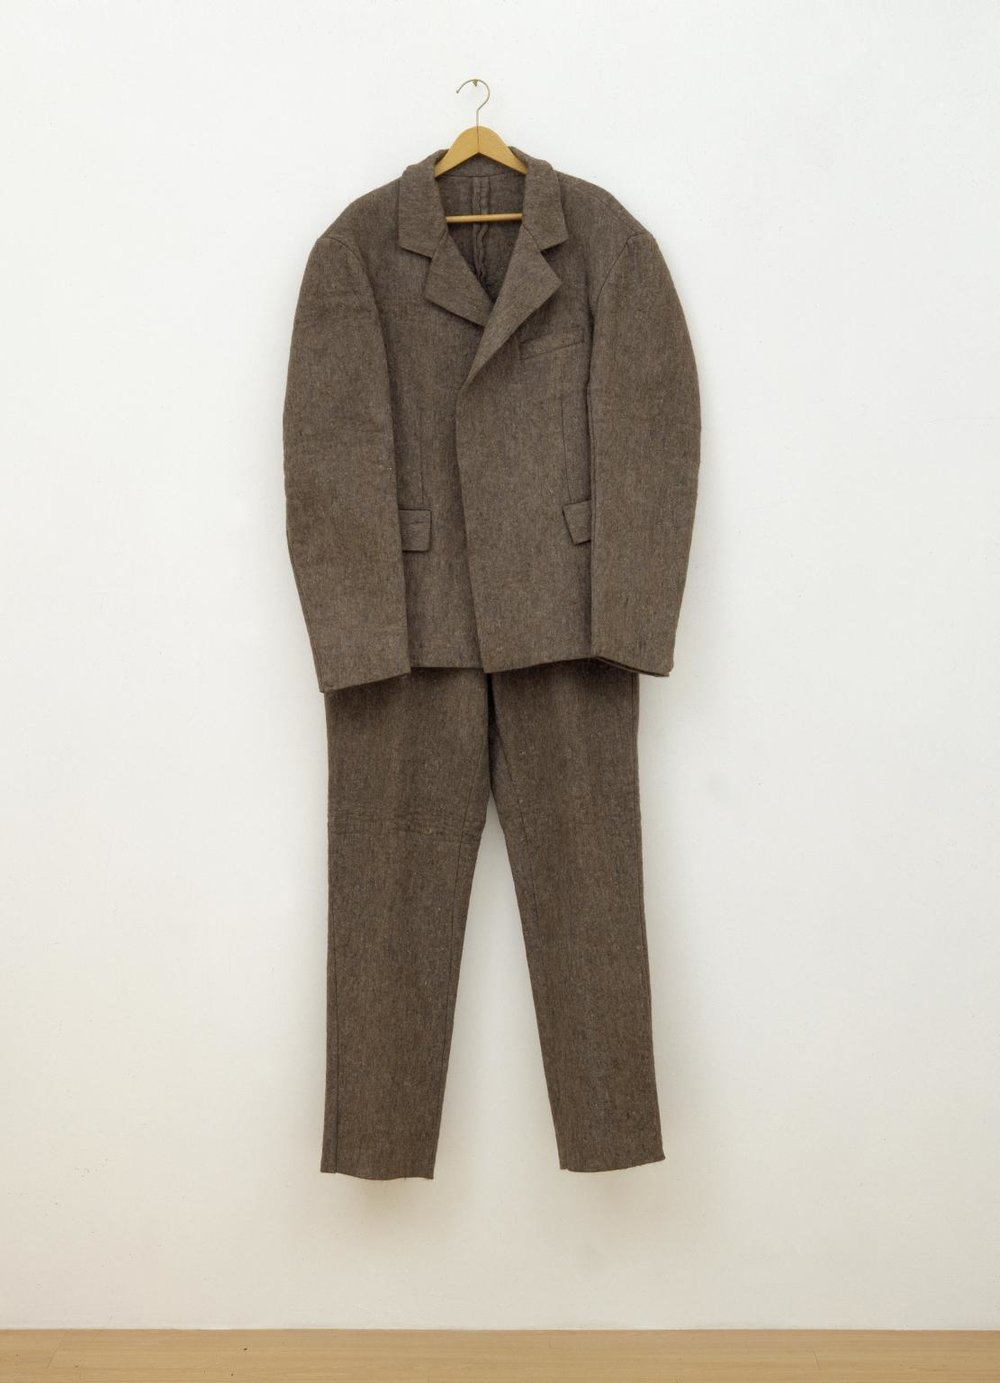 Joseph Beuys 'Felt Suit' 1970